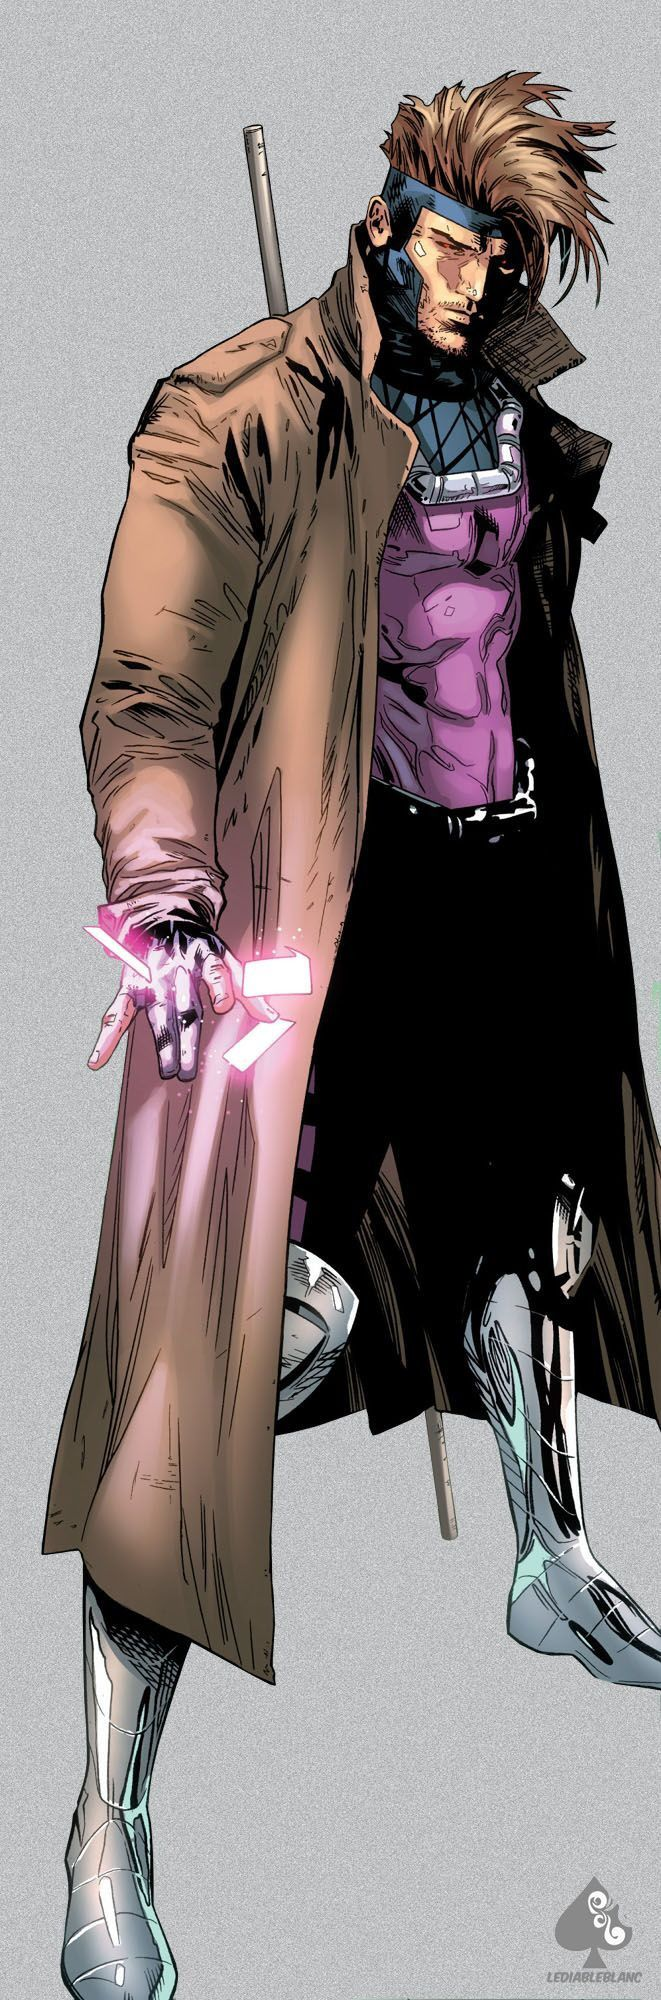 Gambit. The thief of hearts. A scoundrel turned good man by the love of a good woman. -MB